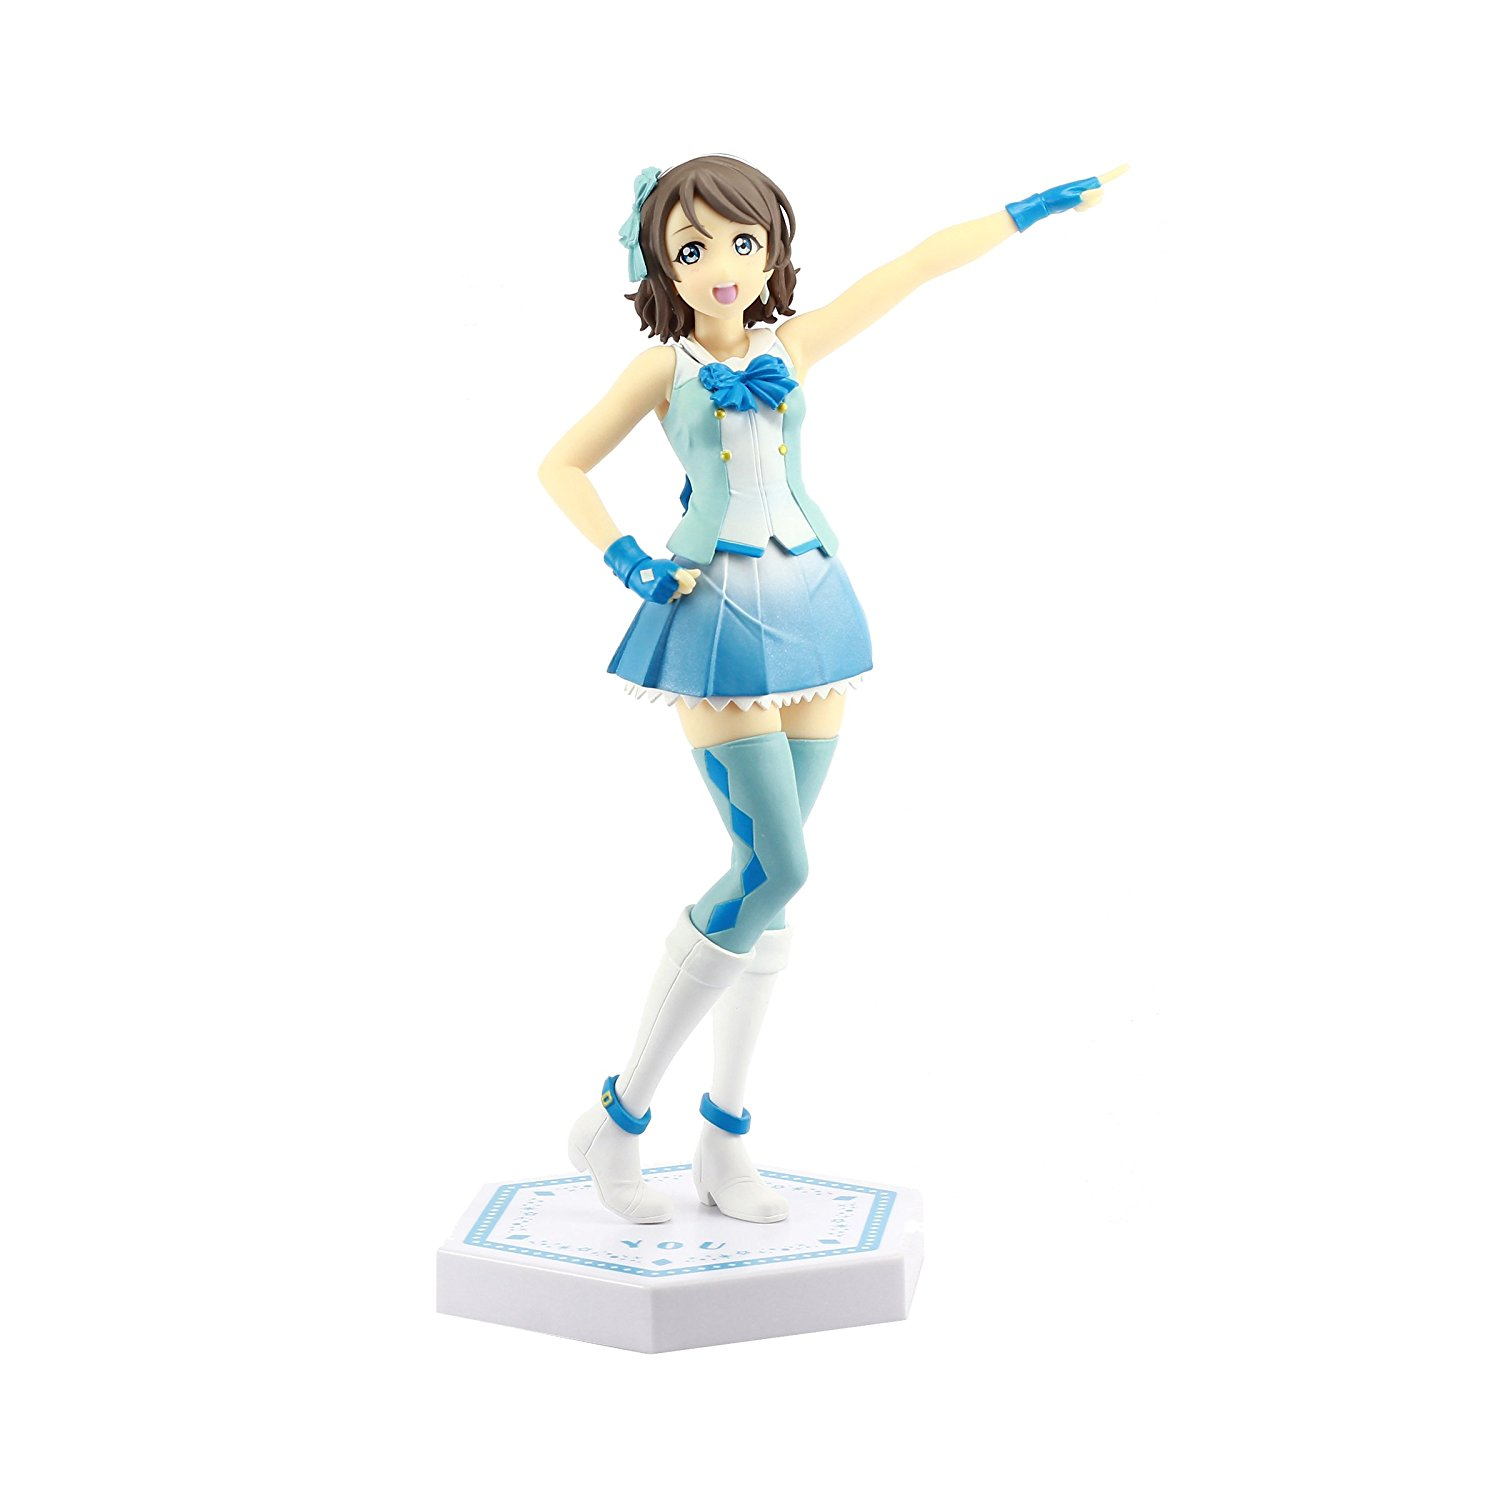 Anime Black Friday Sale, Love Live, You Watanabe Figure